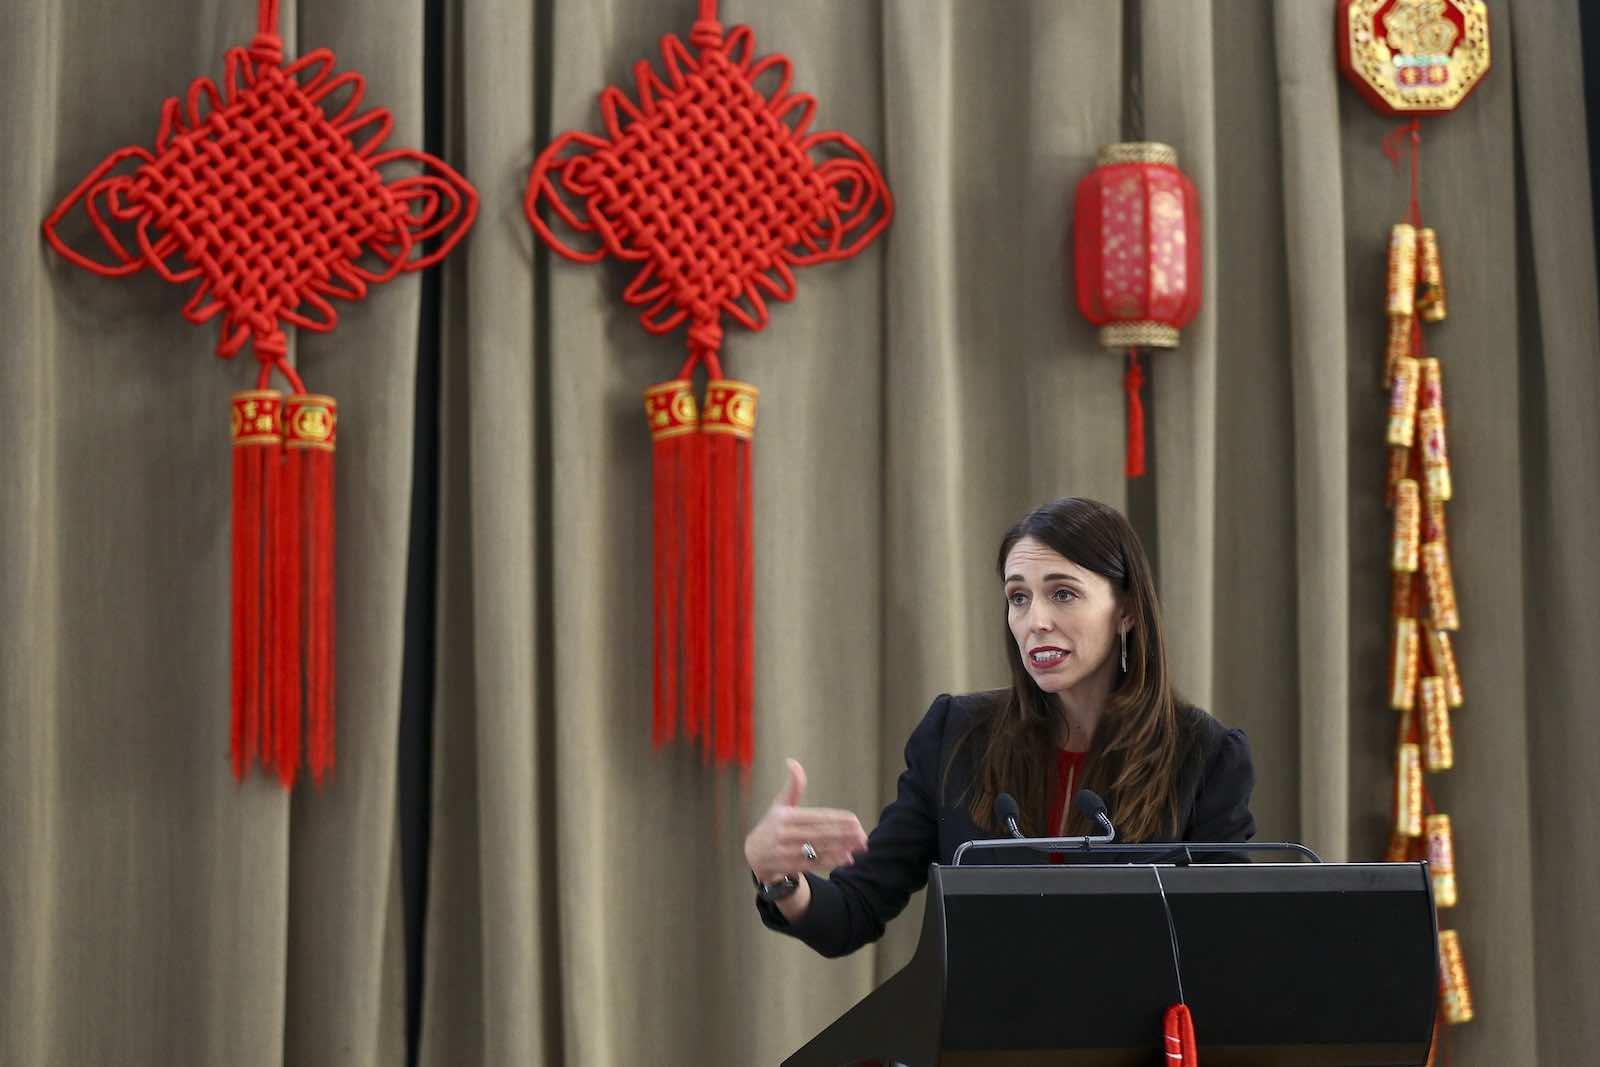 New Zealand Prime Minister Jacinda Ardern speaks during a Chinese New Year celebration in February in Wellington, New Zealand (Hagen Hopkins/Getty Images)